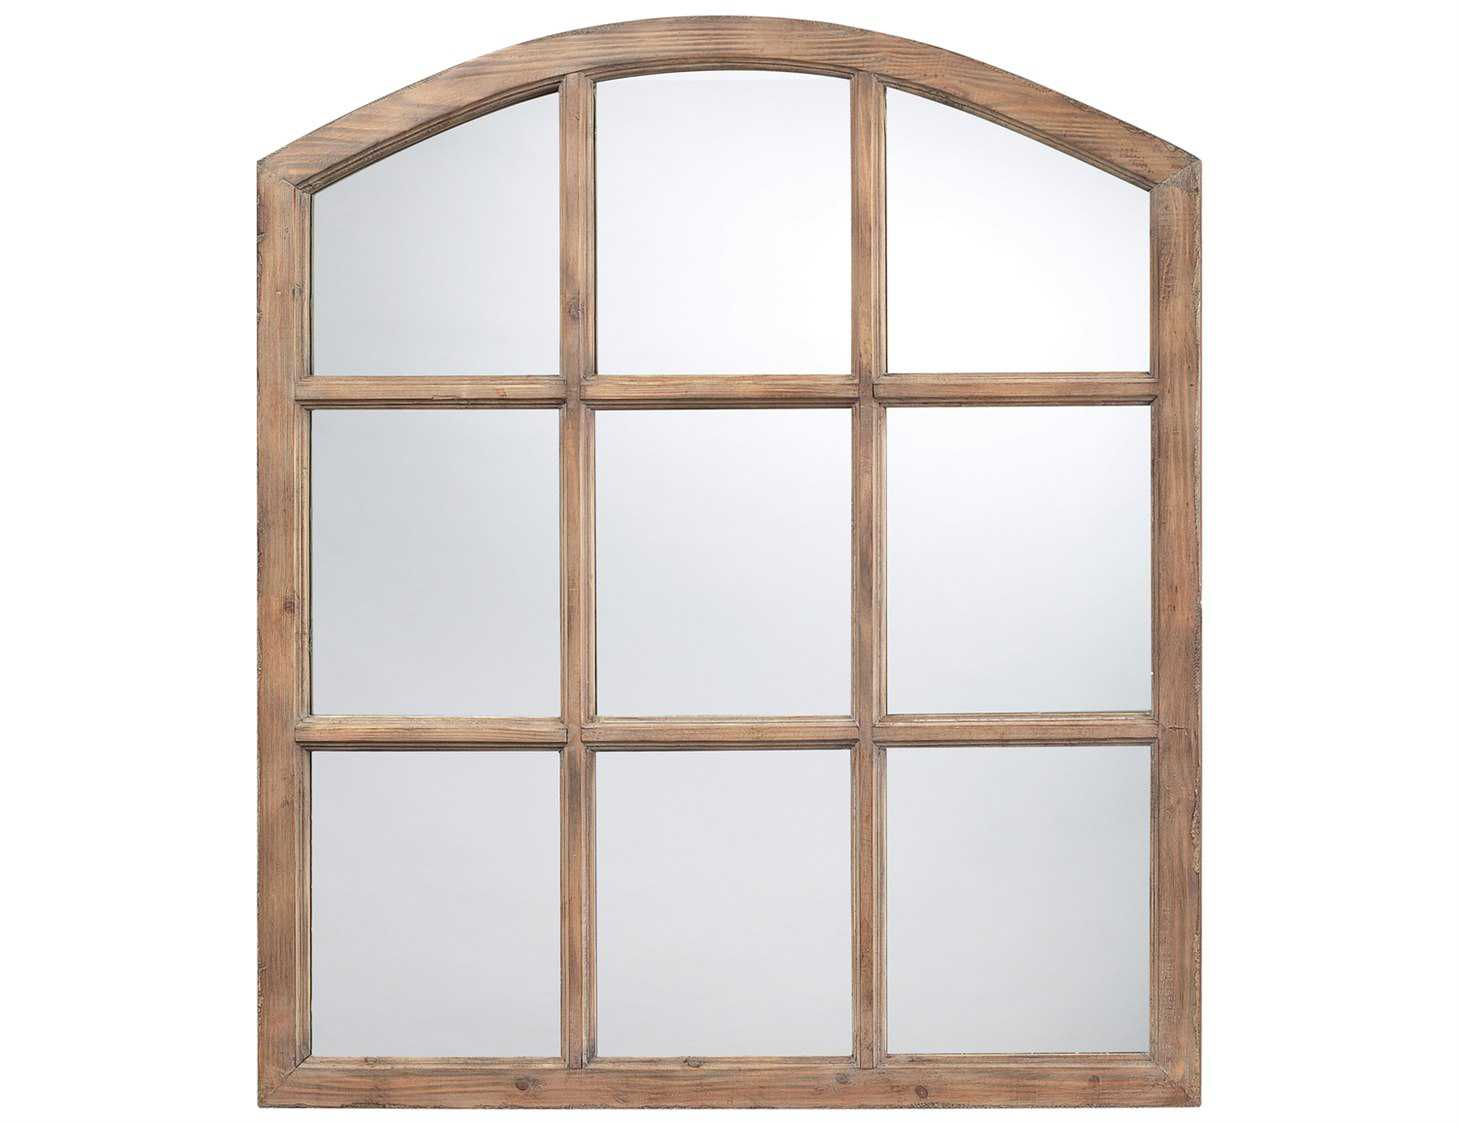 Sterling Union Wood 33 X 37 Faux Window Design Wall Mirror With Regard To Faux Window Wood Wall Mirrors (View 8 of 20)